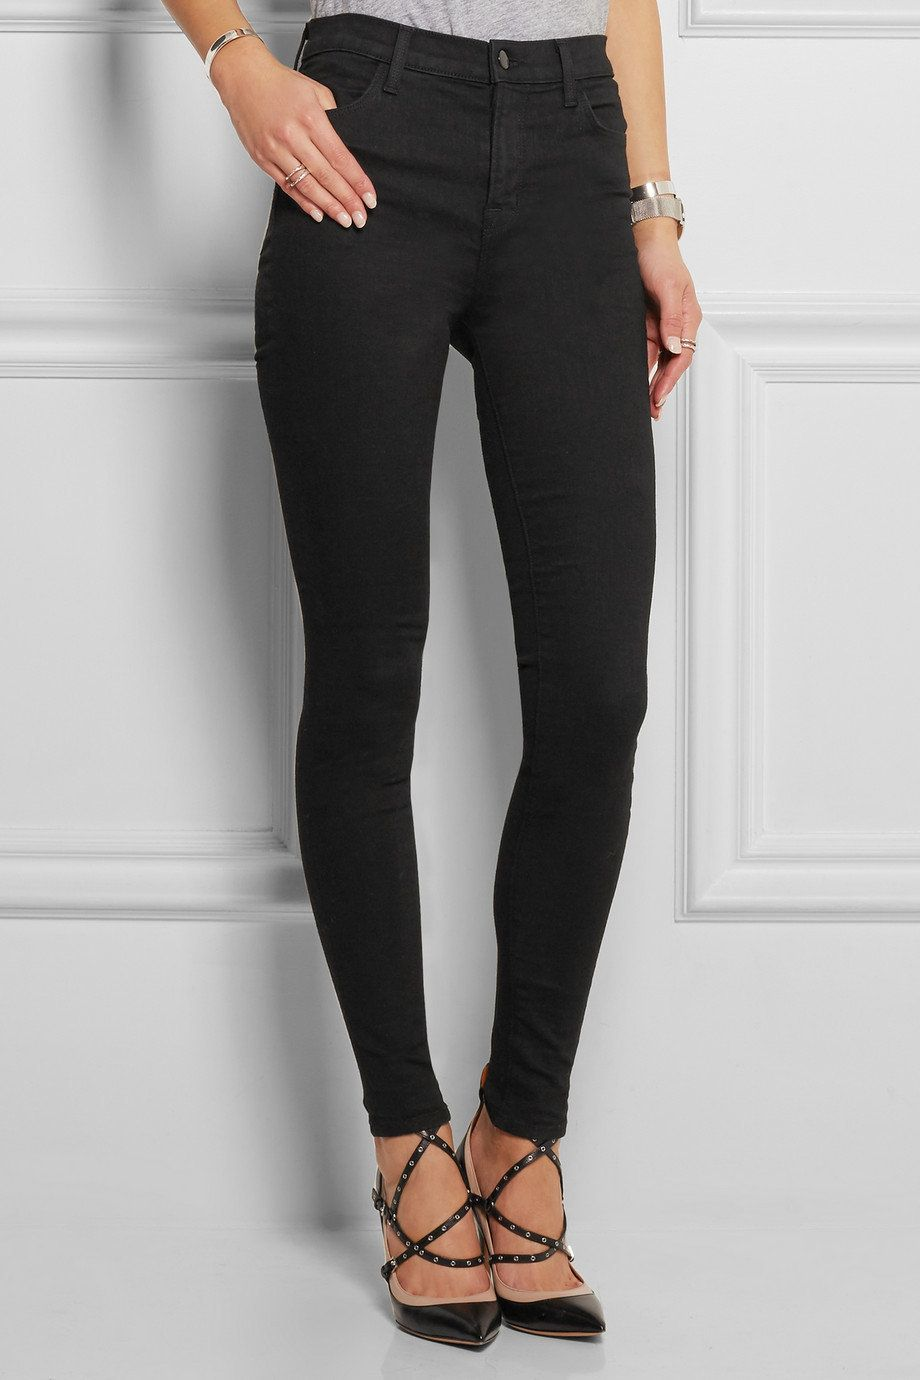 Black skinny jeans for big thighs